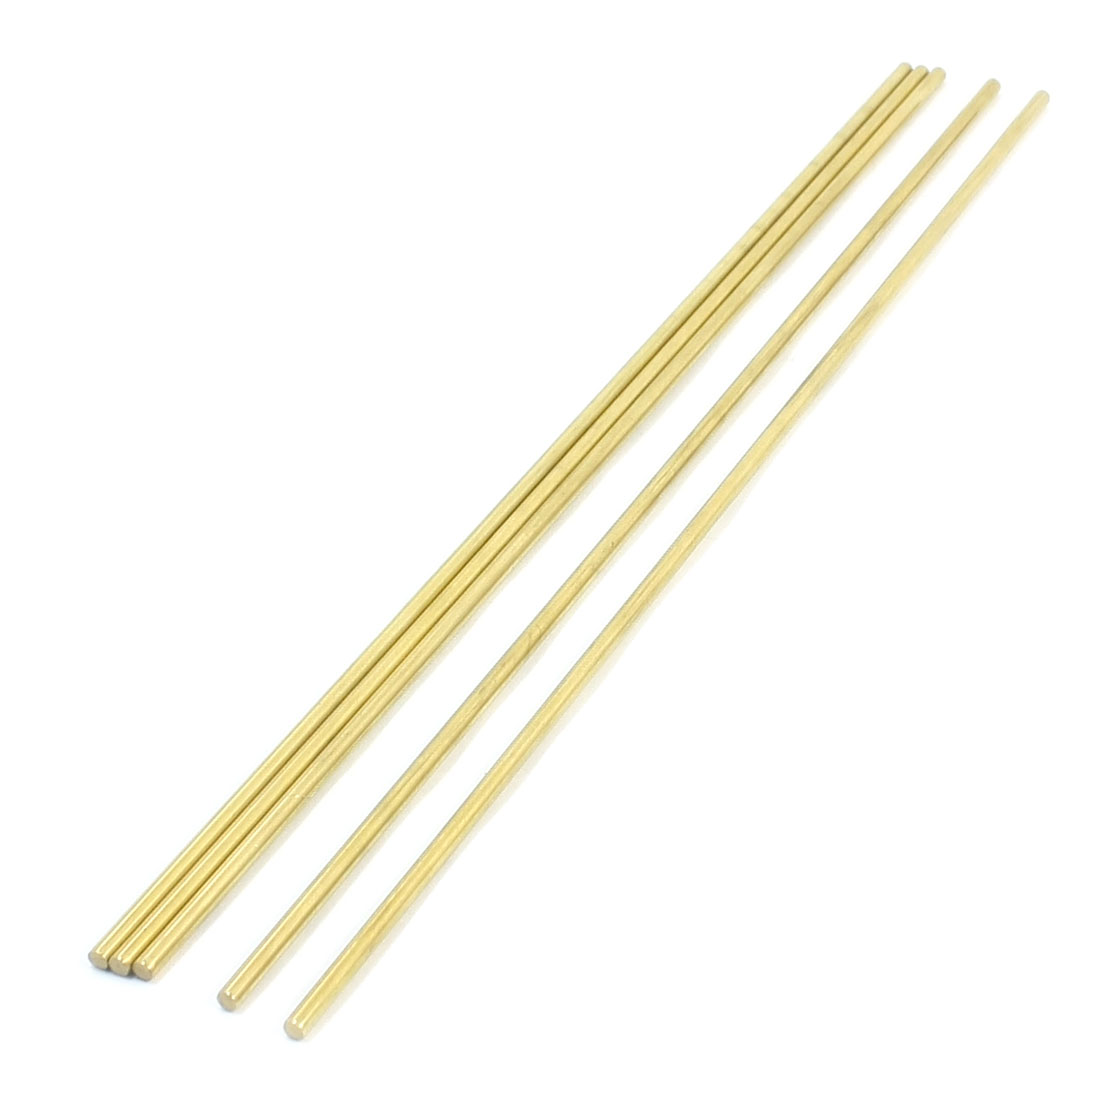 5Pcs Gold Tone Brass 250mm x 3mm Round Rod Stock for CNC Lathe Machine